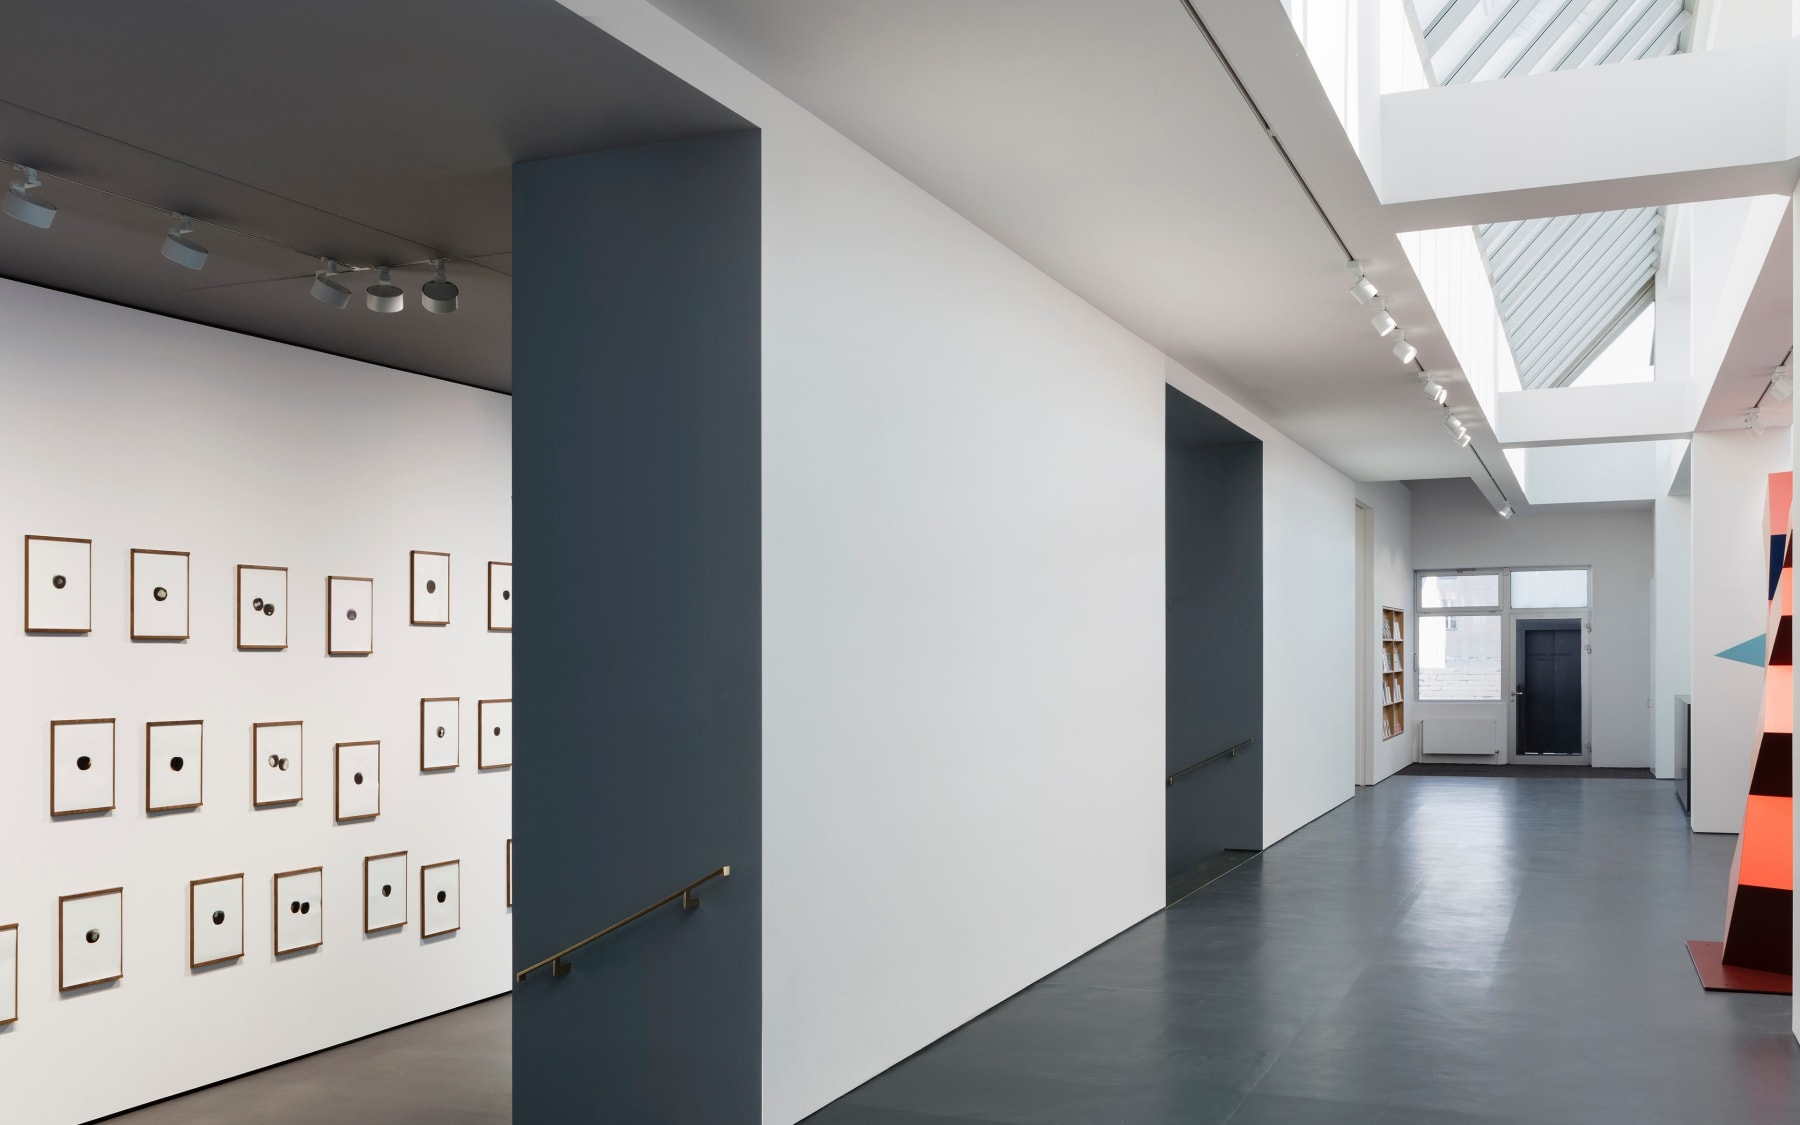 The Gallery Was Founded 1989 In Cologne And Opened With General Ideau0027s ¥en  Boutique. Many Of The Artists With Whom Esther Schipper Has Worked Since  The ...